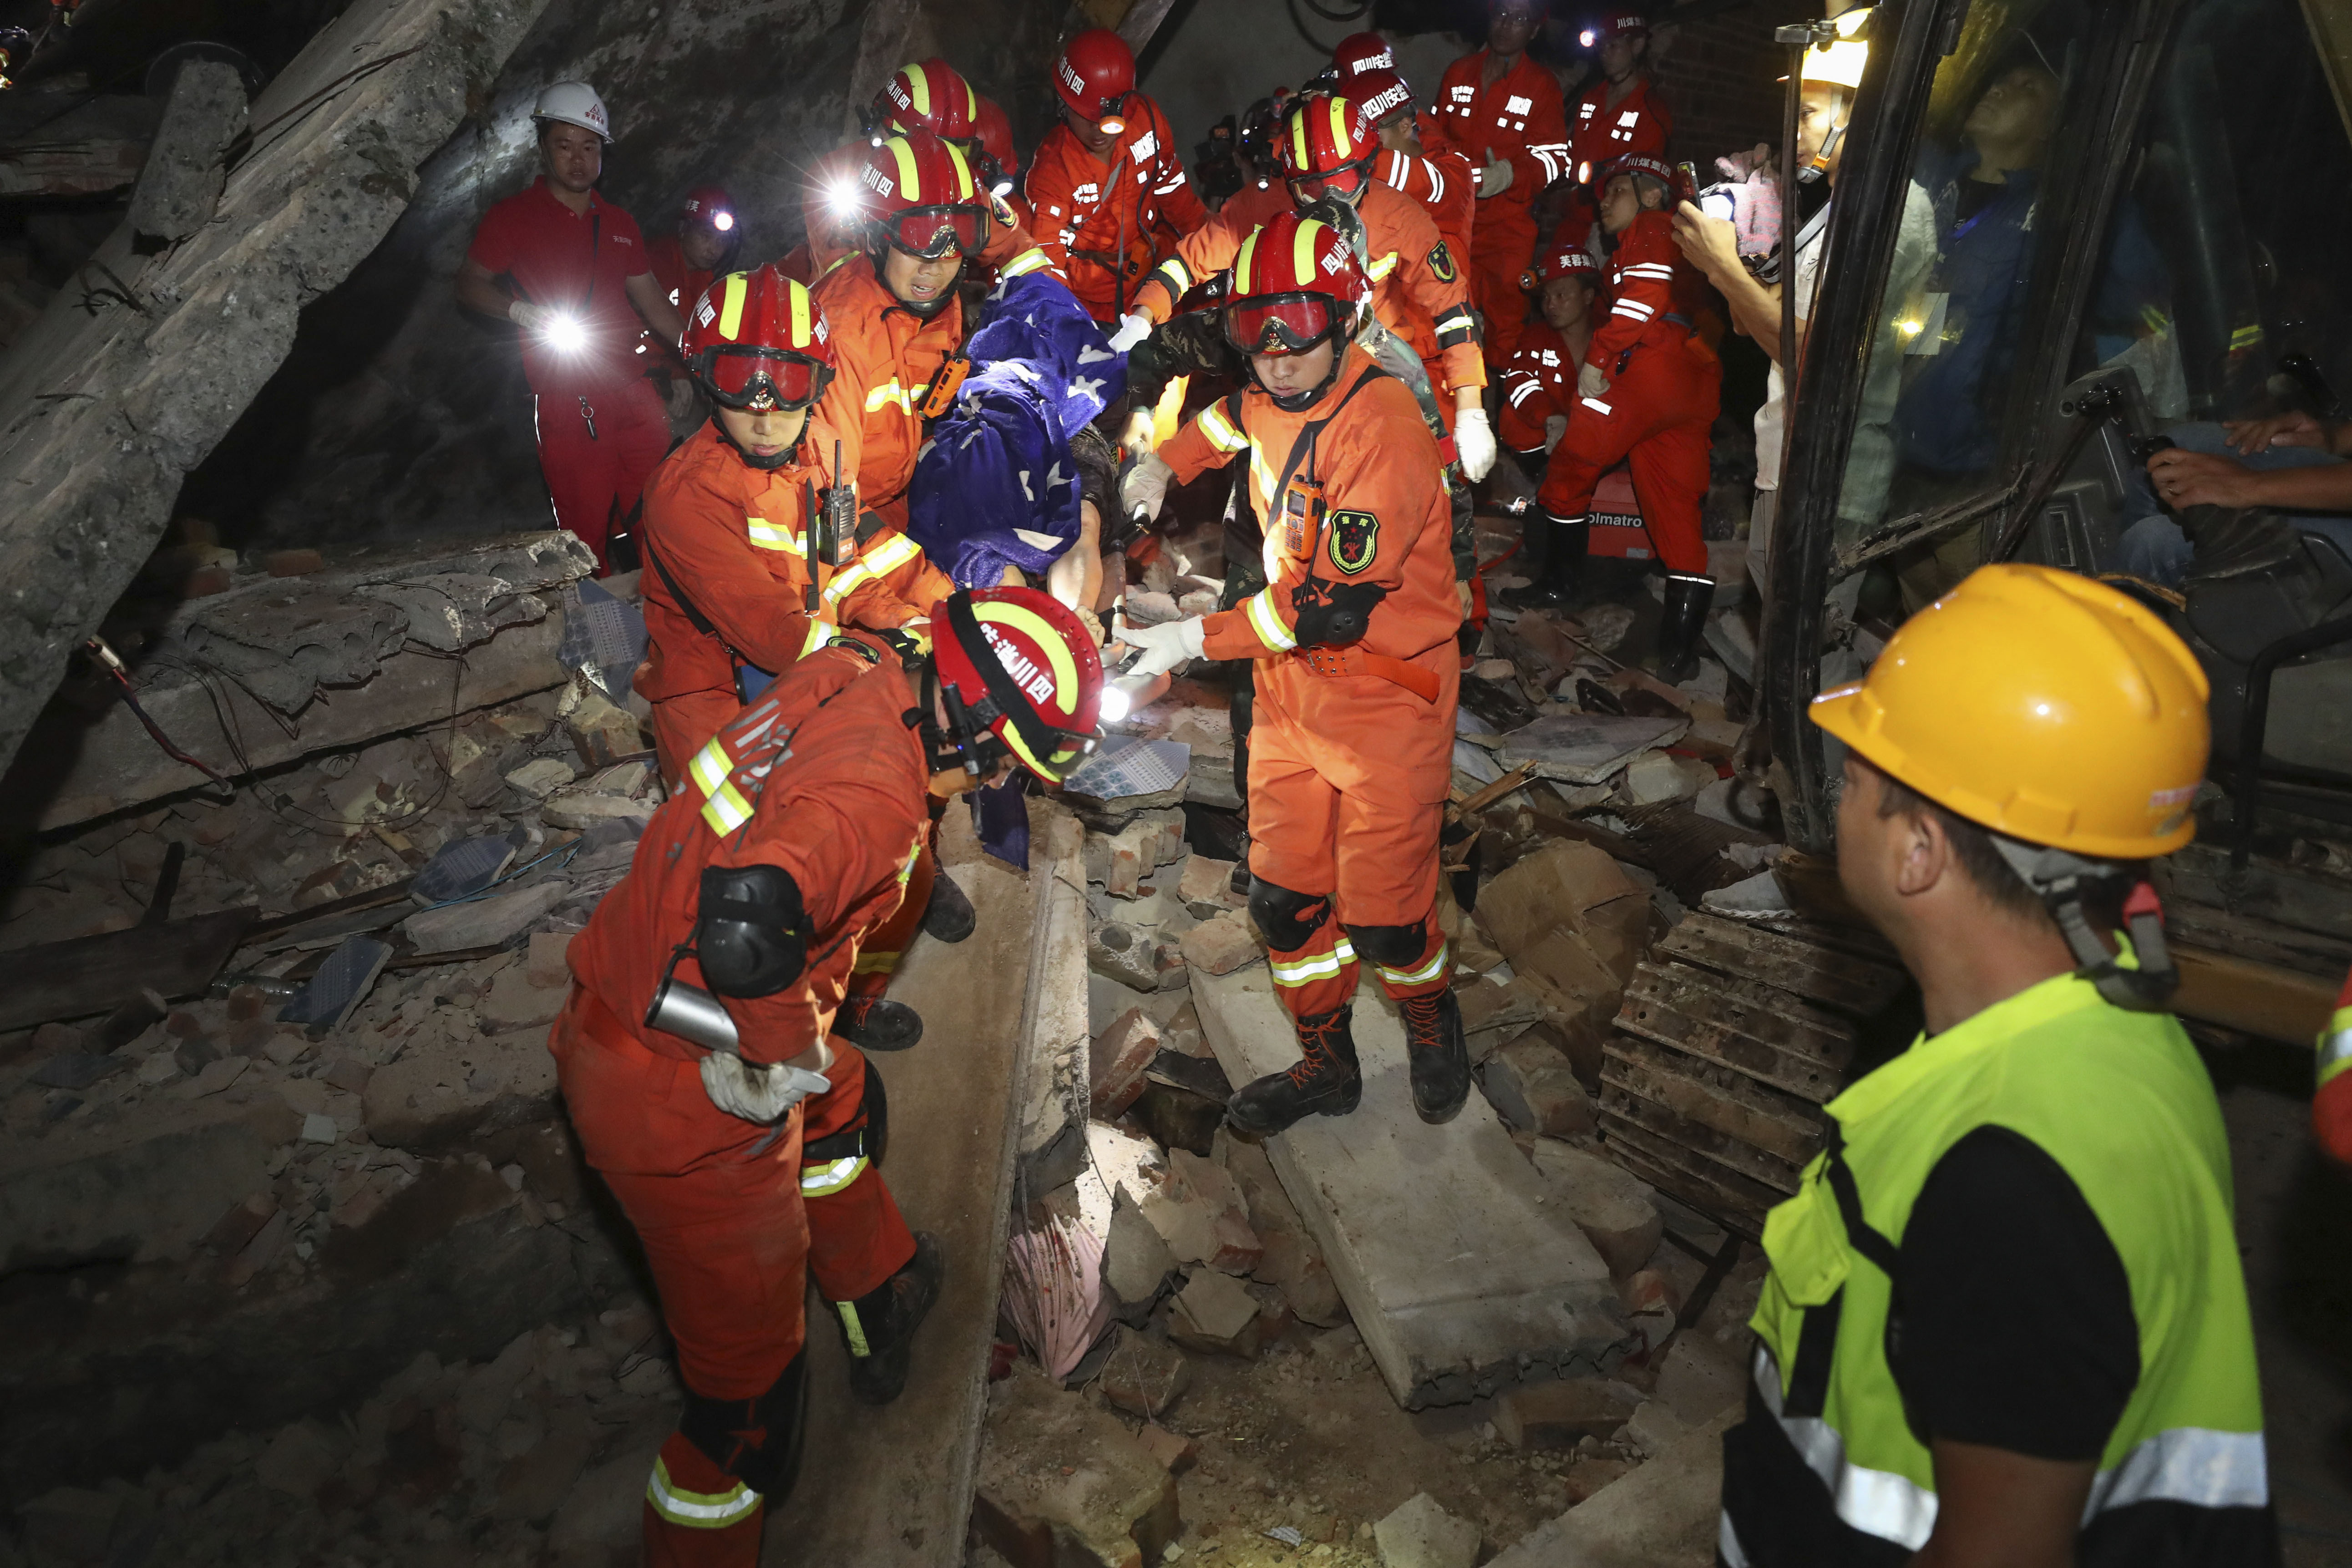 Rescue workers carry out a person from the collapsed building